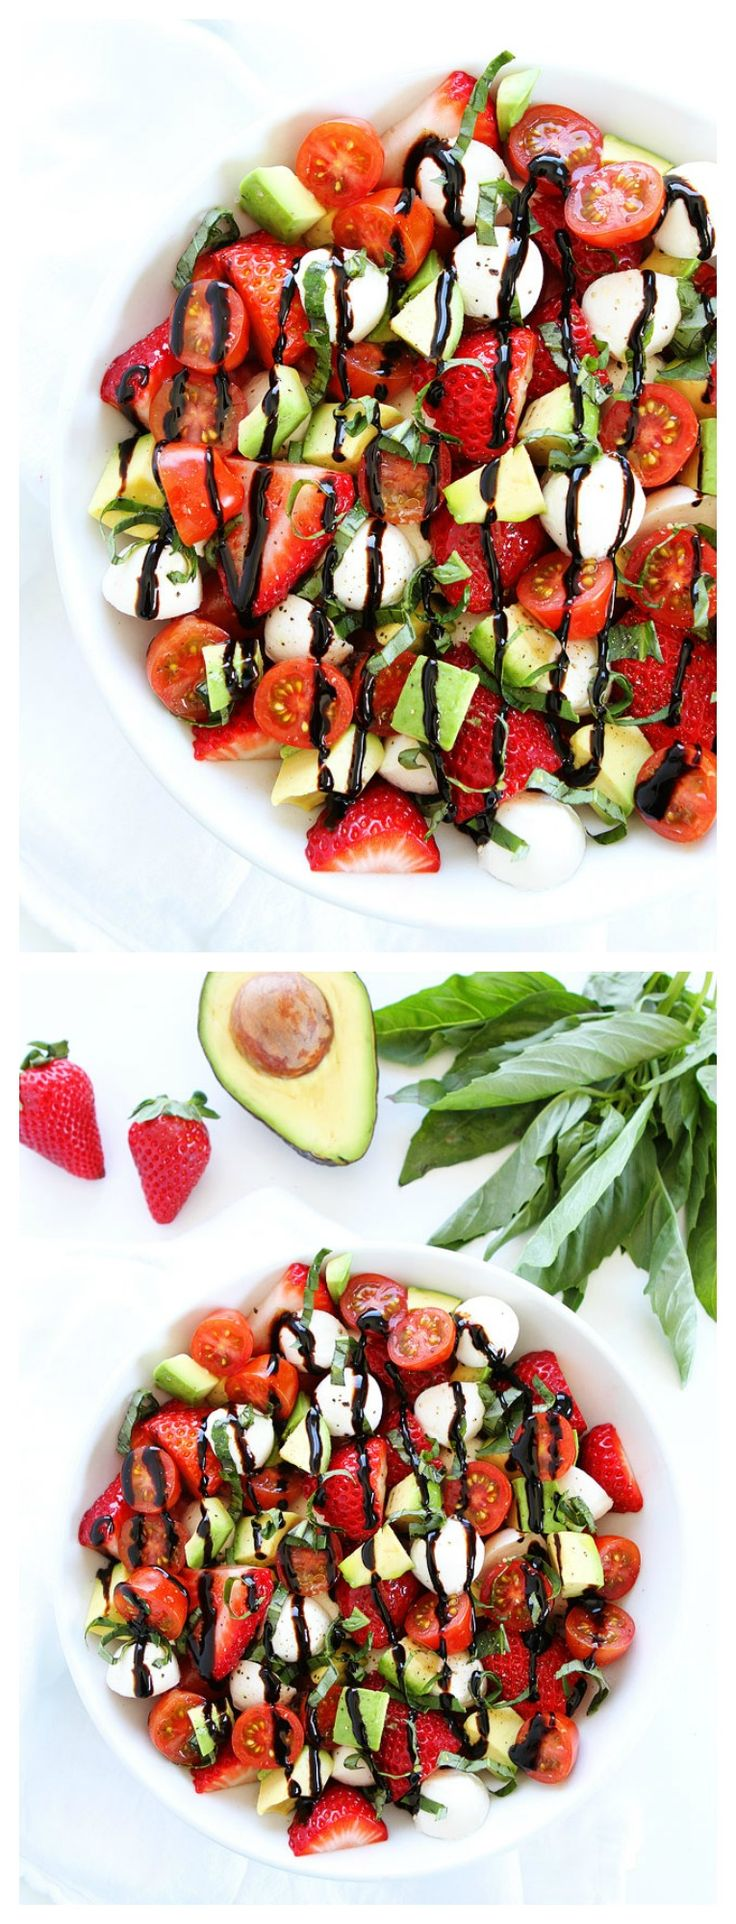 Avocado Strawberry Caprese Salad Recipe on twopeasandtheirpod.com Avocado and strawberries make this caprese salad extra special. It is a great salad for spring and summer!: